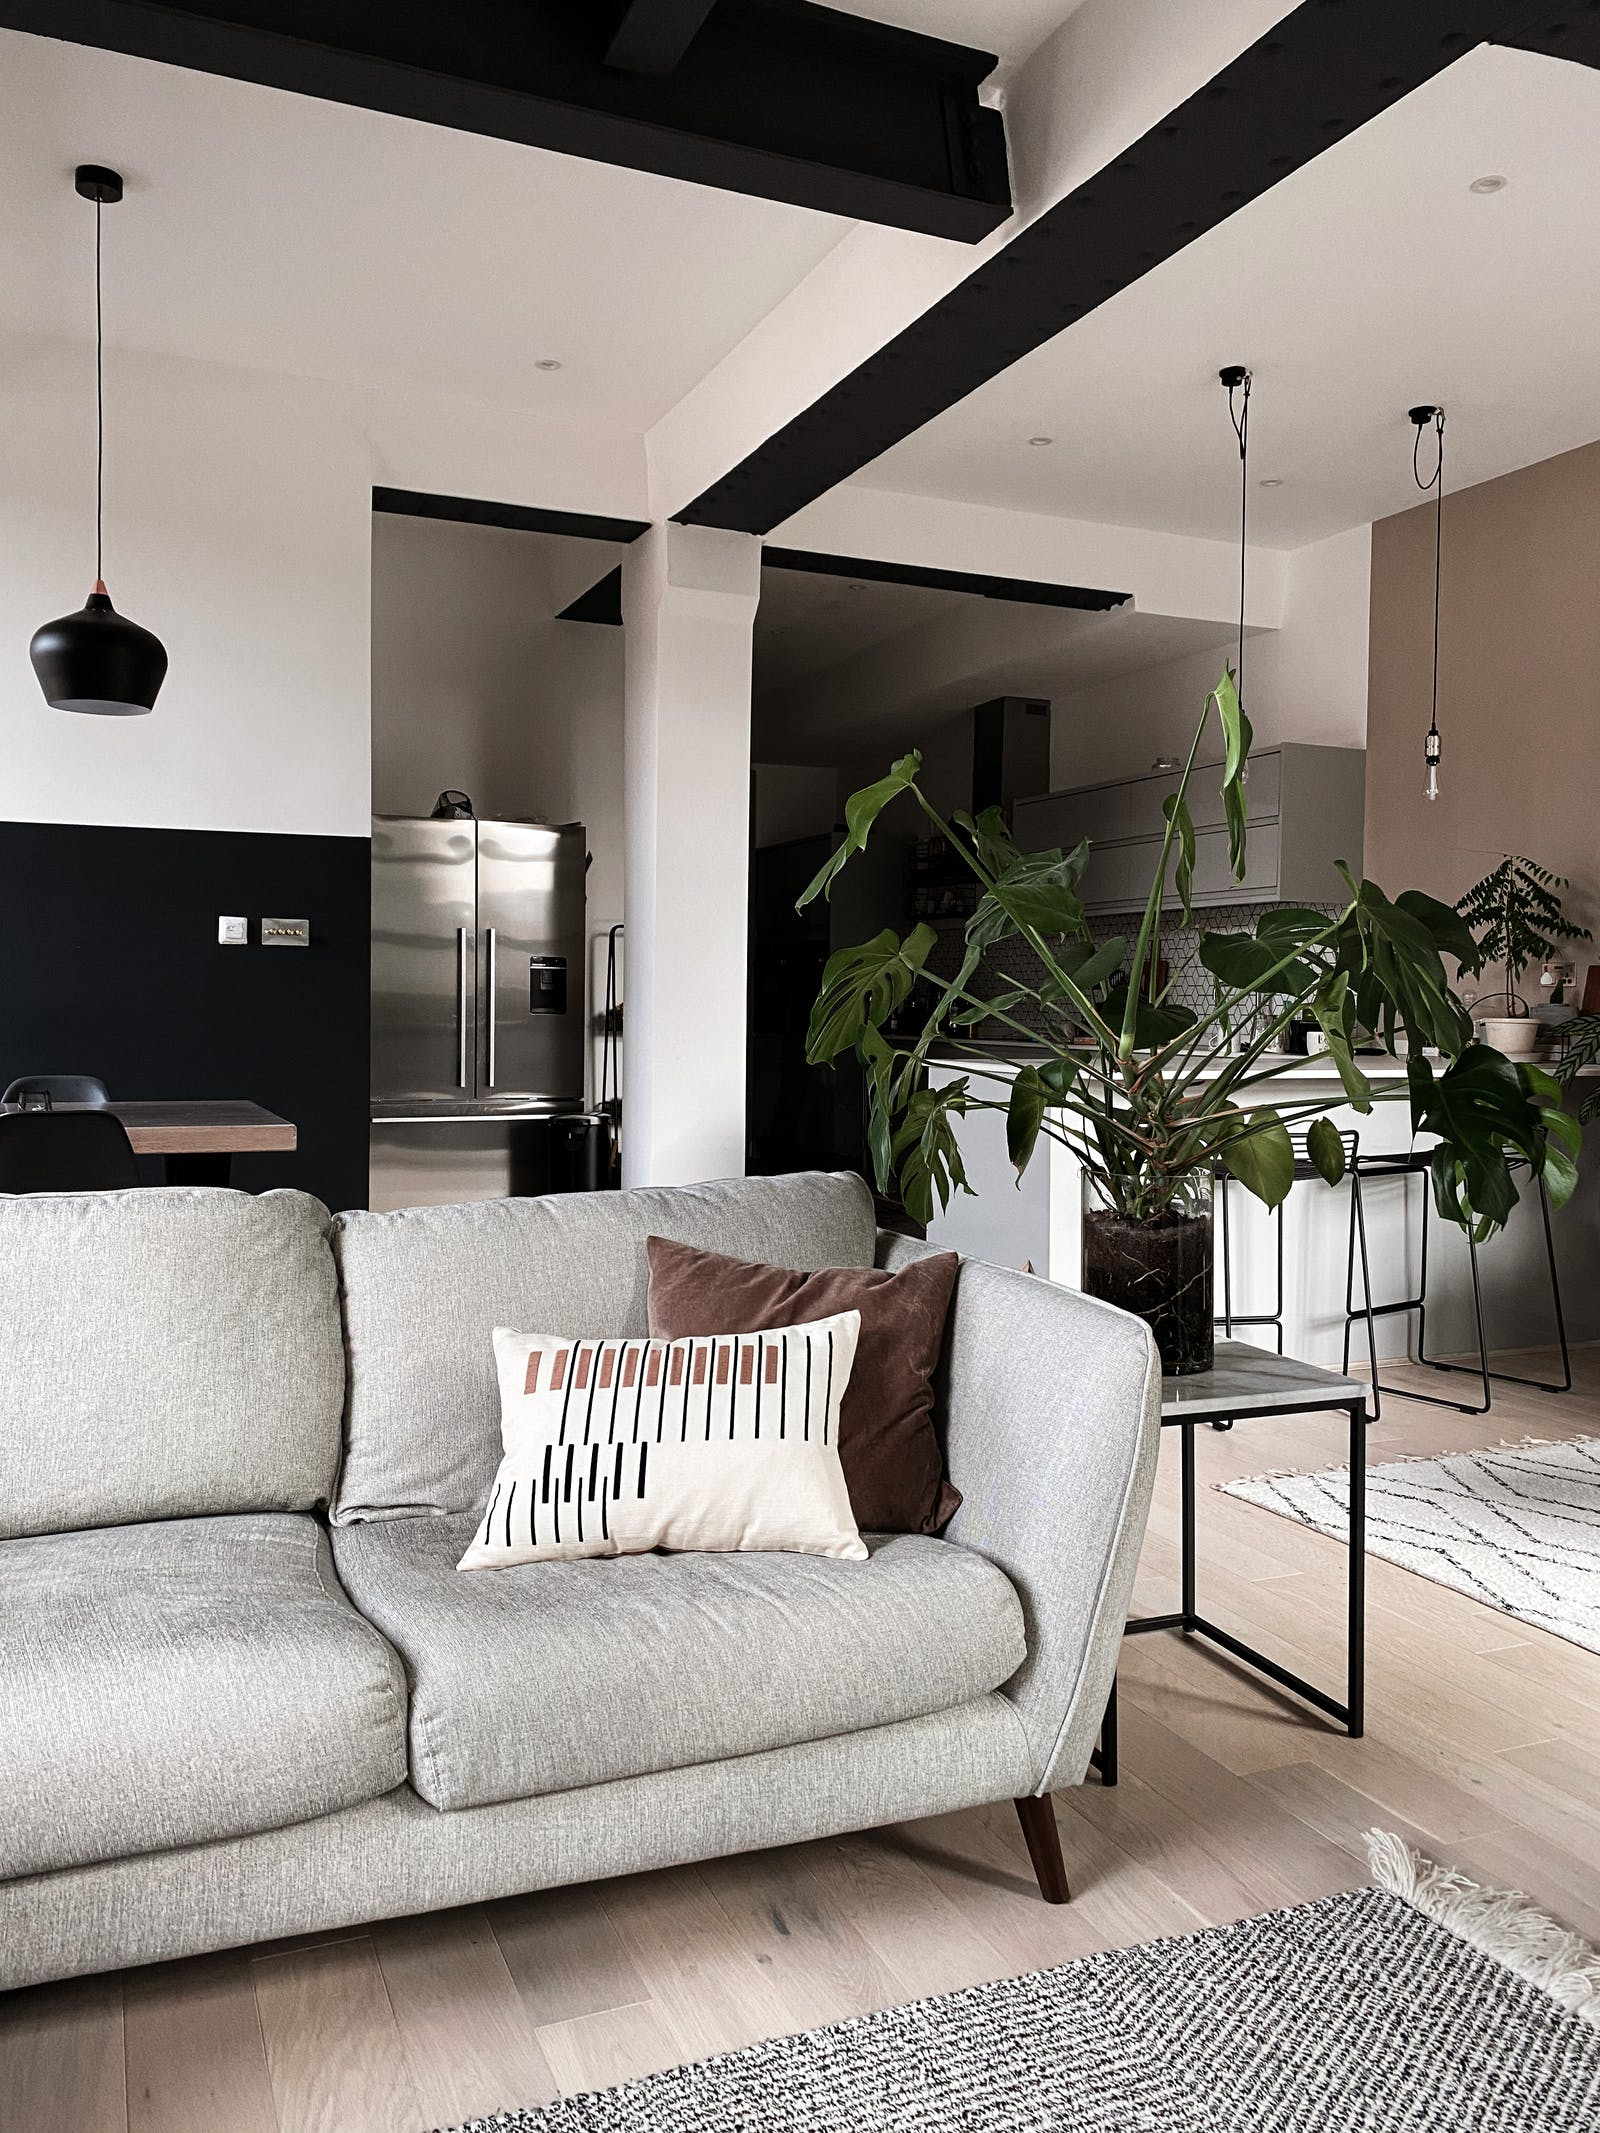 Living room with a grey sofa and kitchen in the background